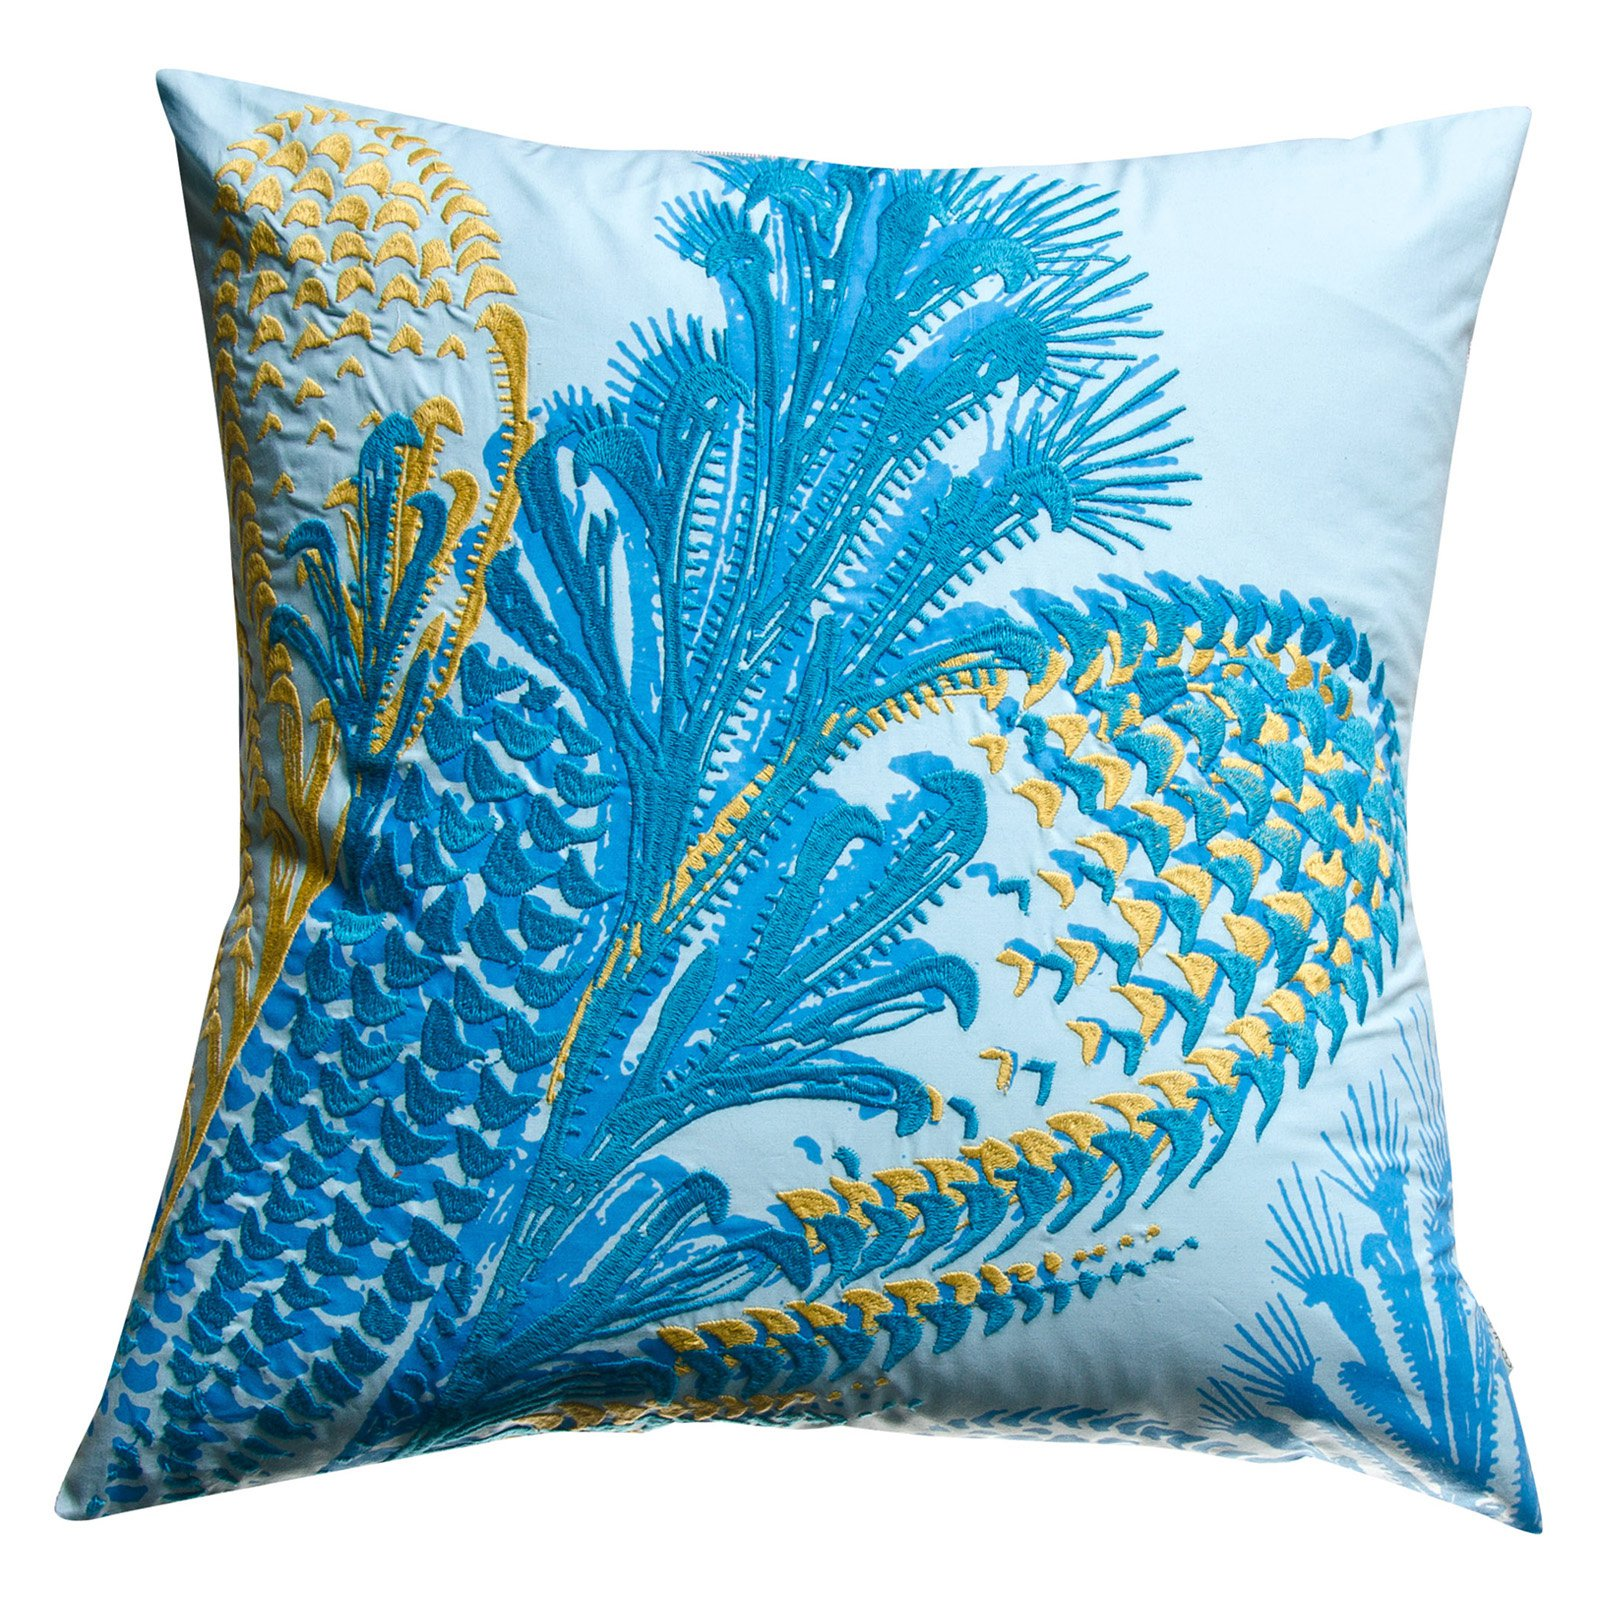 Koko Company 20 in. Water Square Pillow